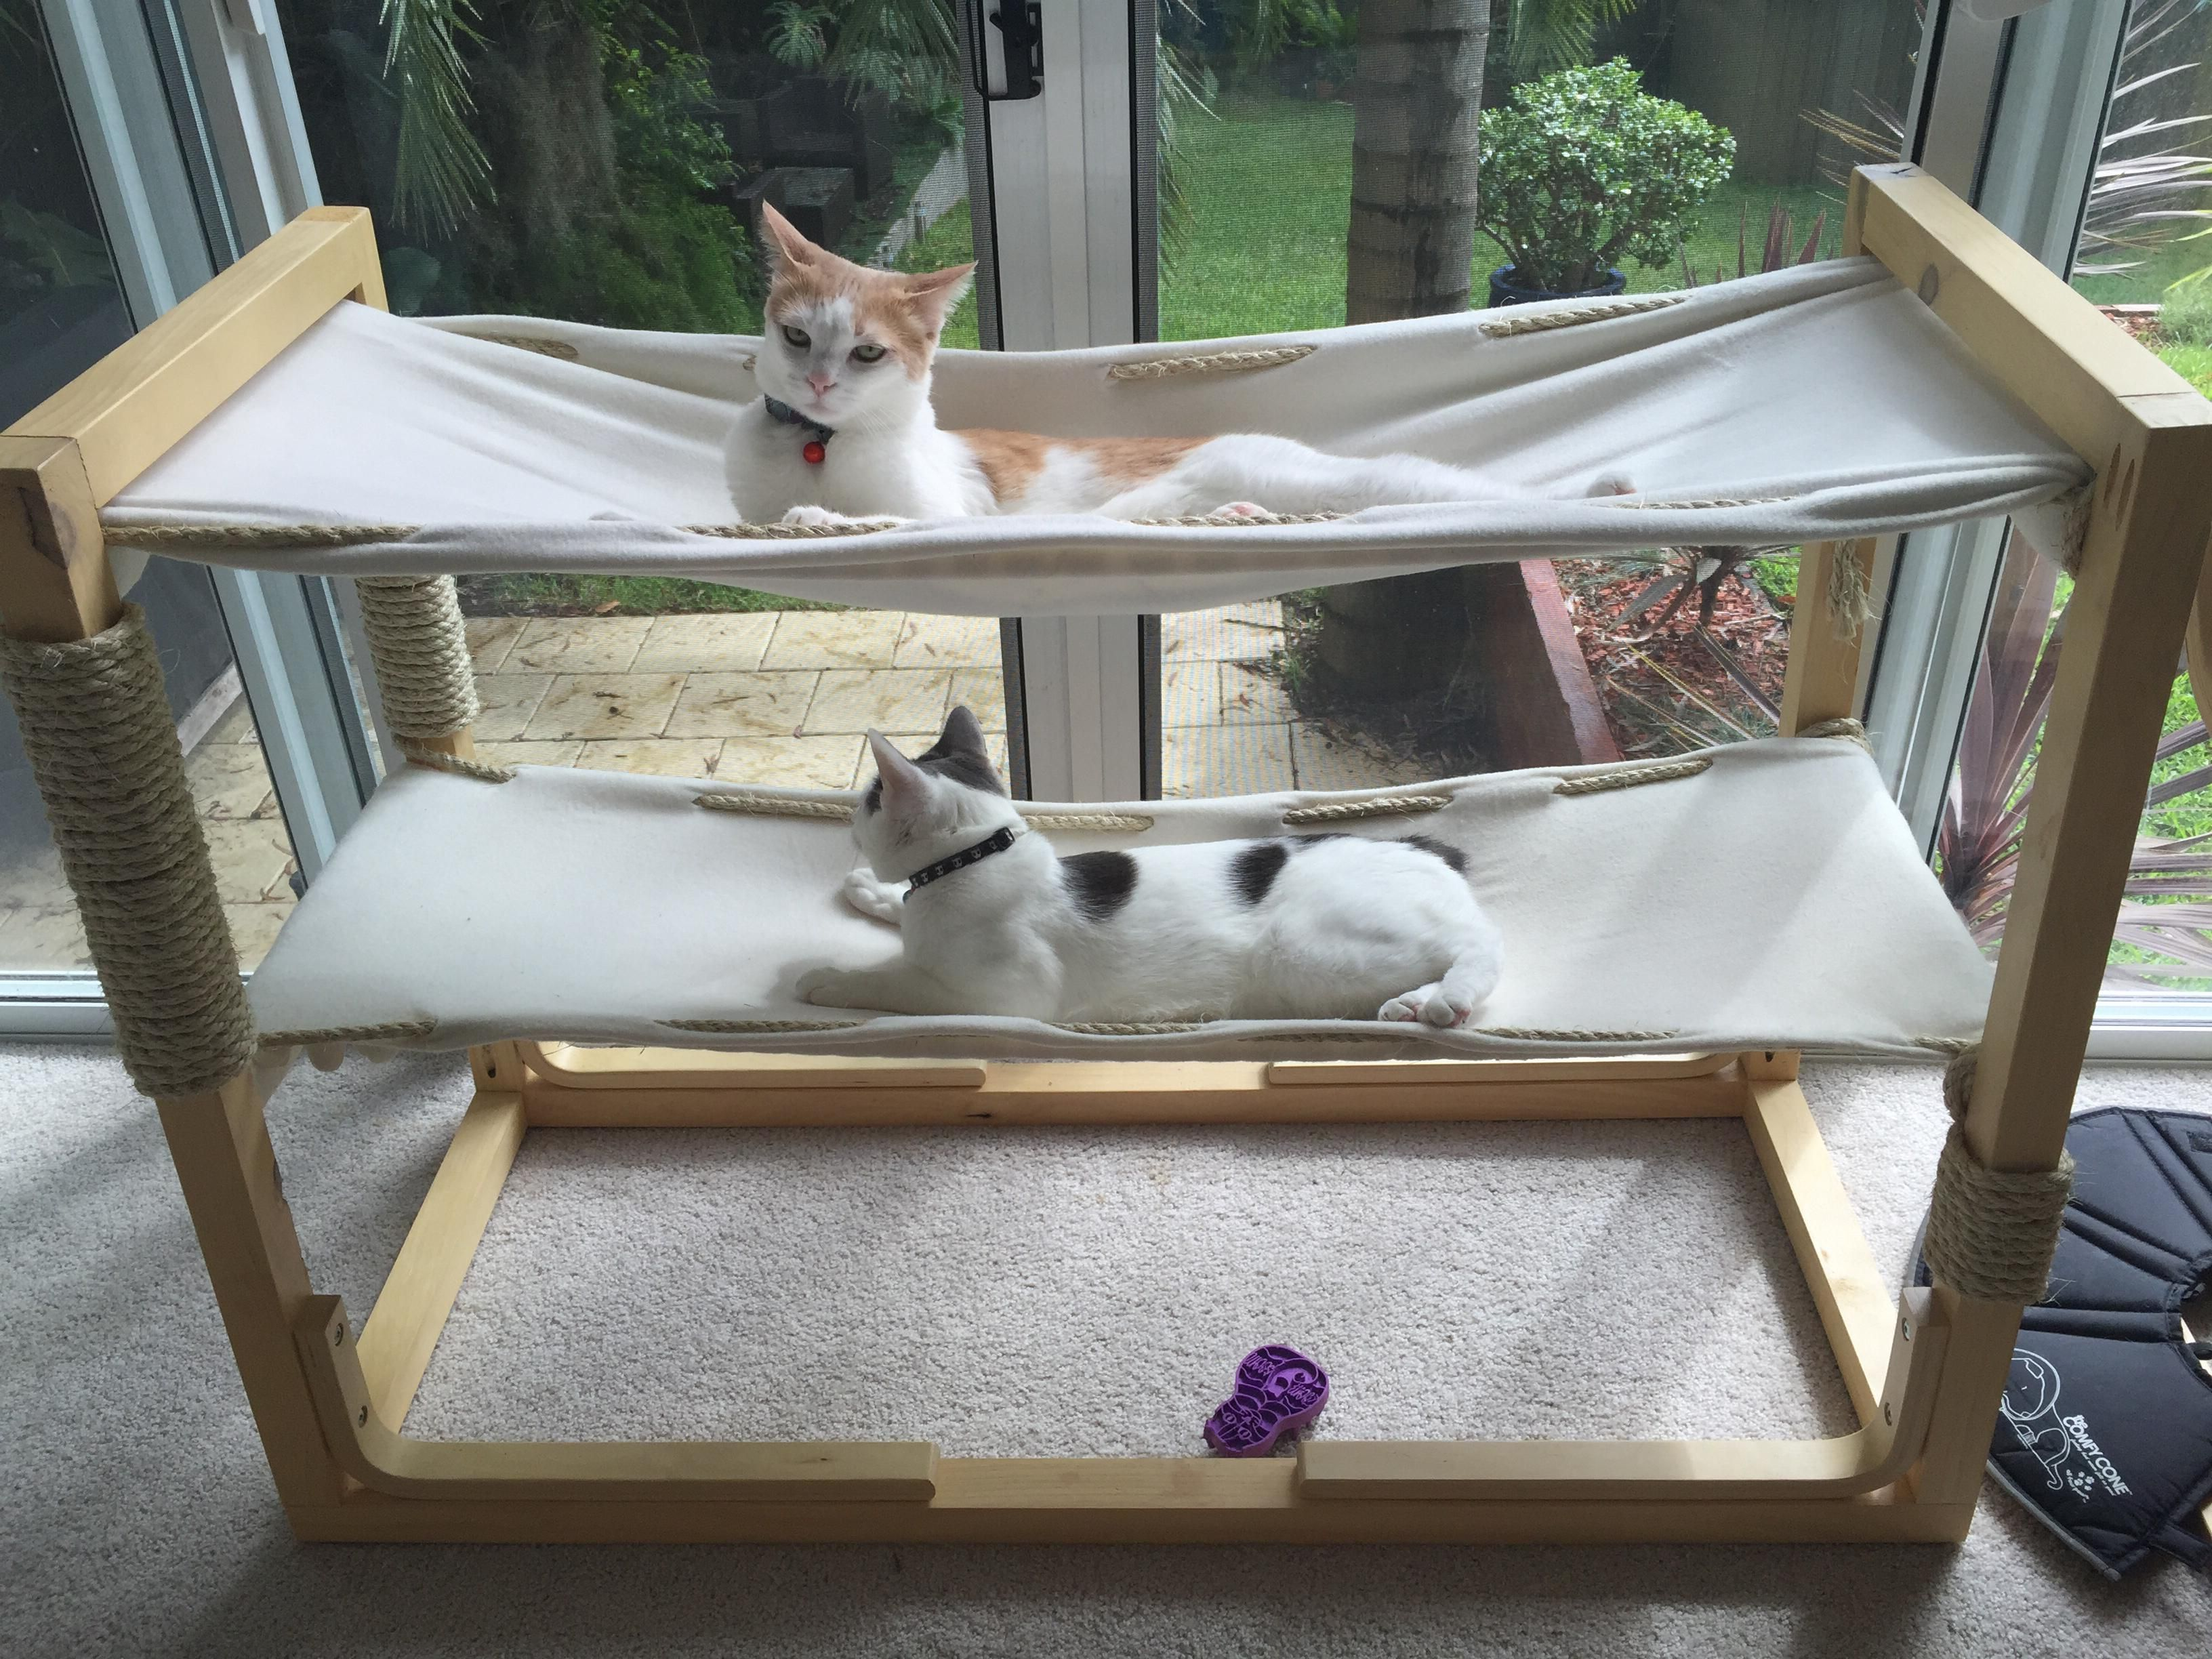 Build bunk bed hammocks for your cats cat and cat furniture